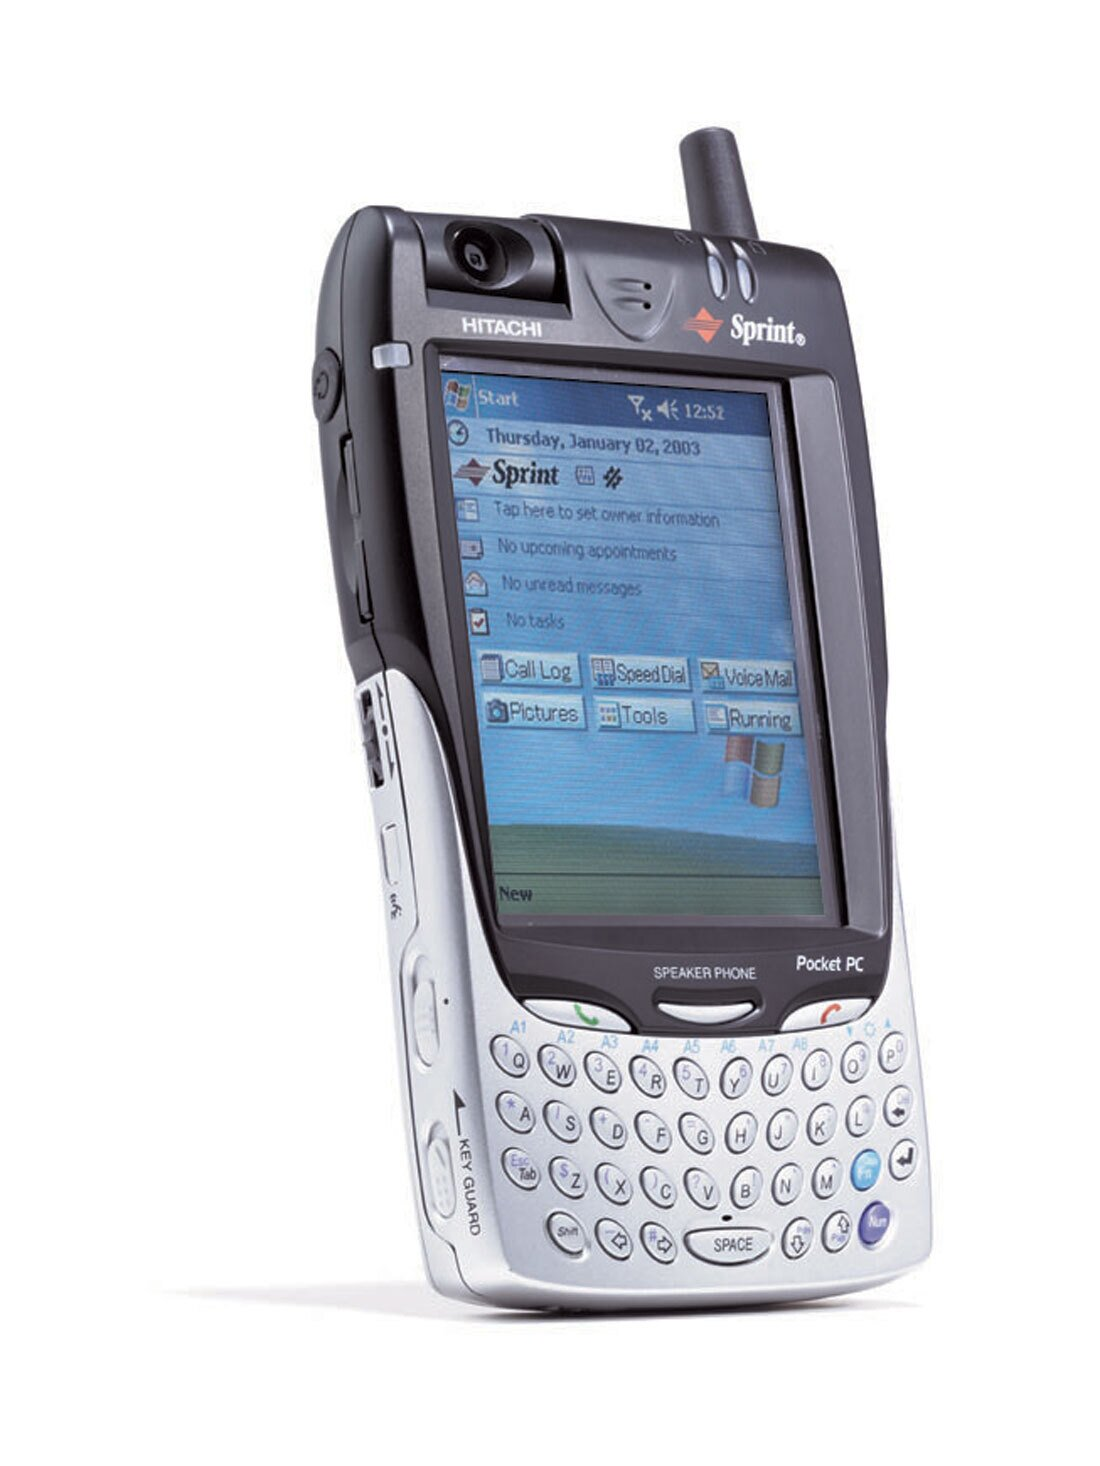 Speakerphone option, organizer, rotating camera, built-in keyboard, MP3 capability, touch screen and stylus, wireless Web and email. Operates on Microsoft Pocket Phone 2002 software. 8.4 ounces, 5.8 x 3.3 x 0.9 inches. Starts at $650.  Photo 5 of 6 in Inspecting Gadgets